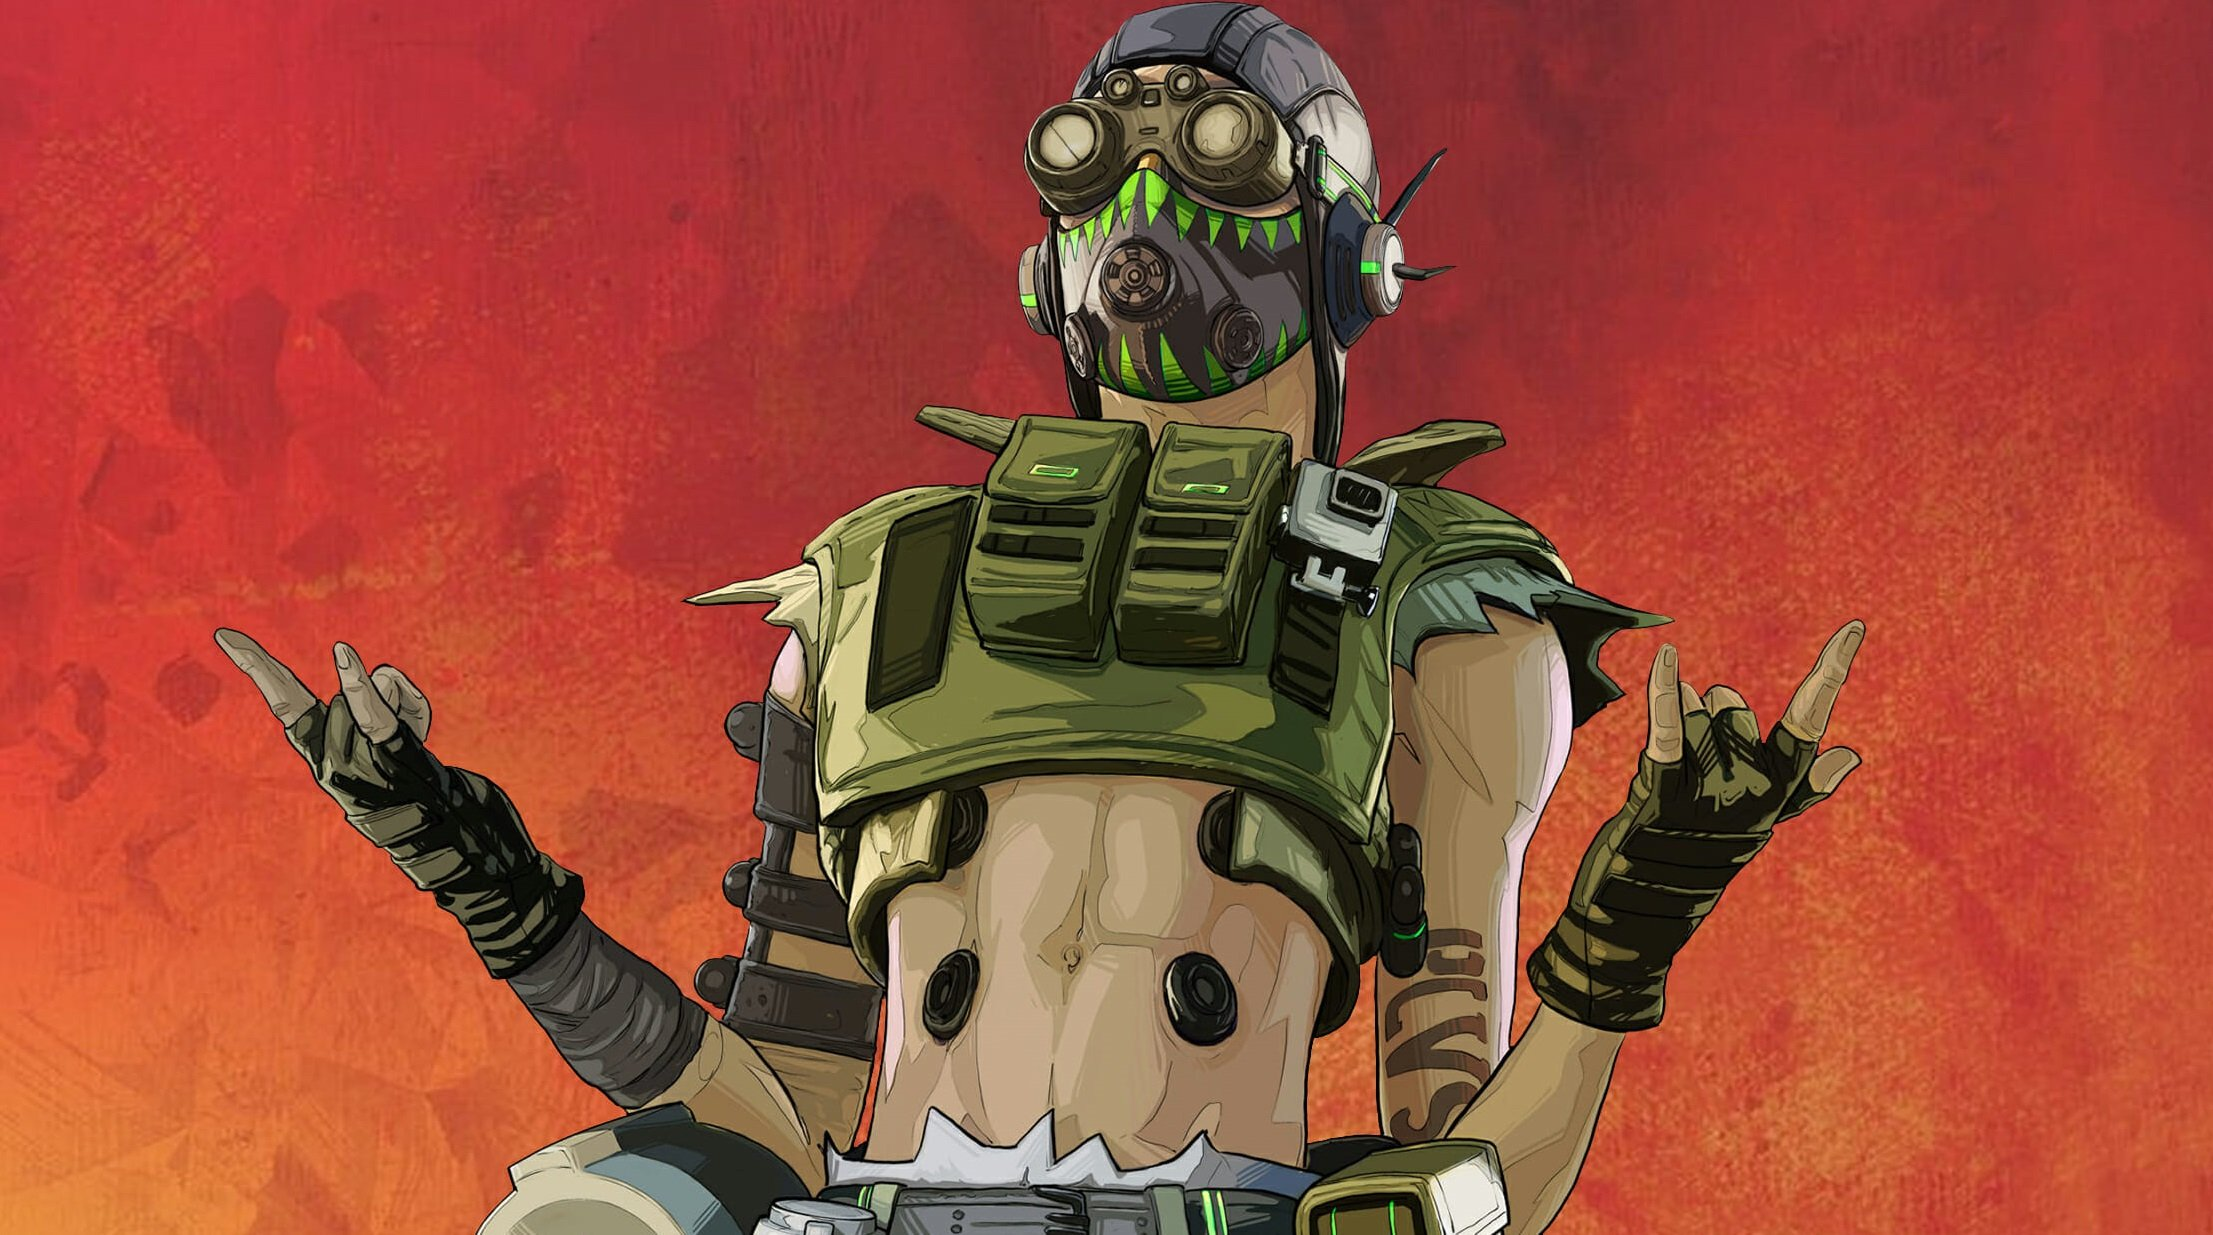 Octane from Apex Legends has a stylish face mask decorated with green teeth.